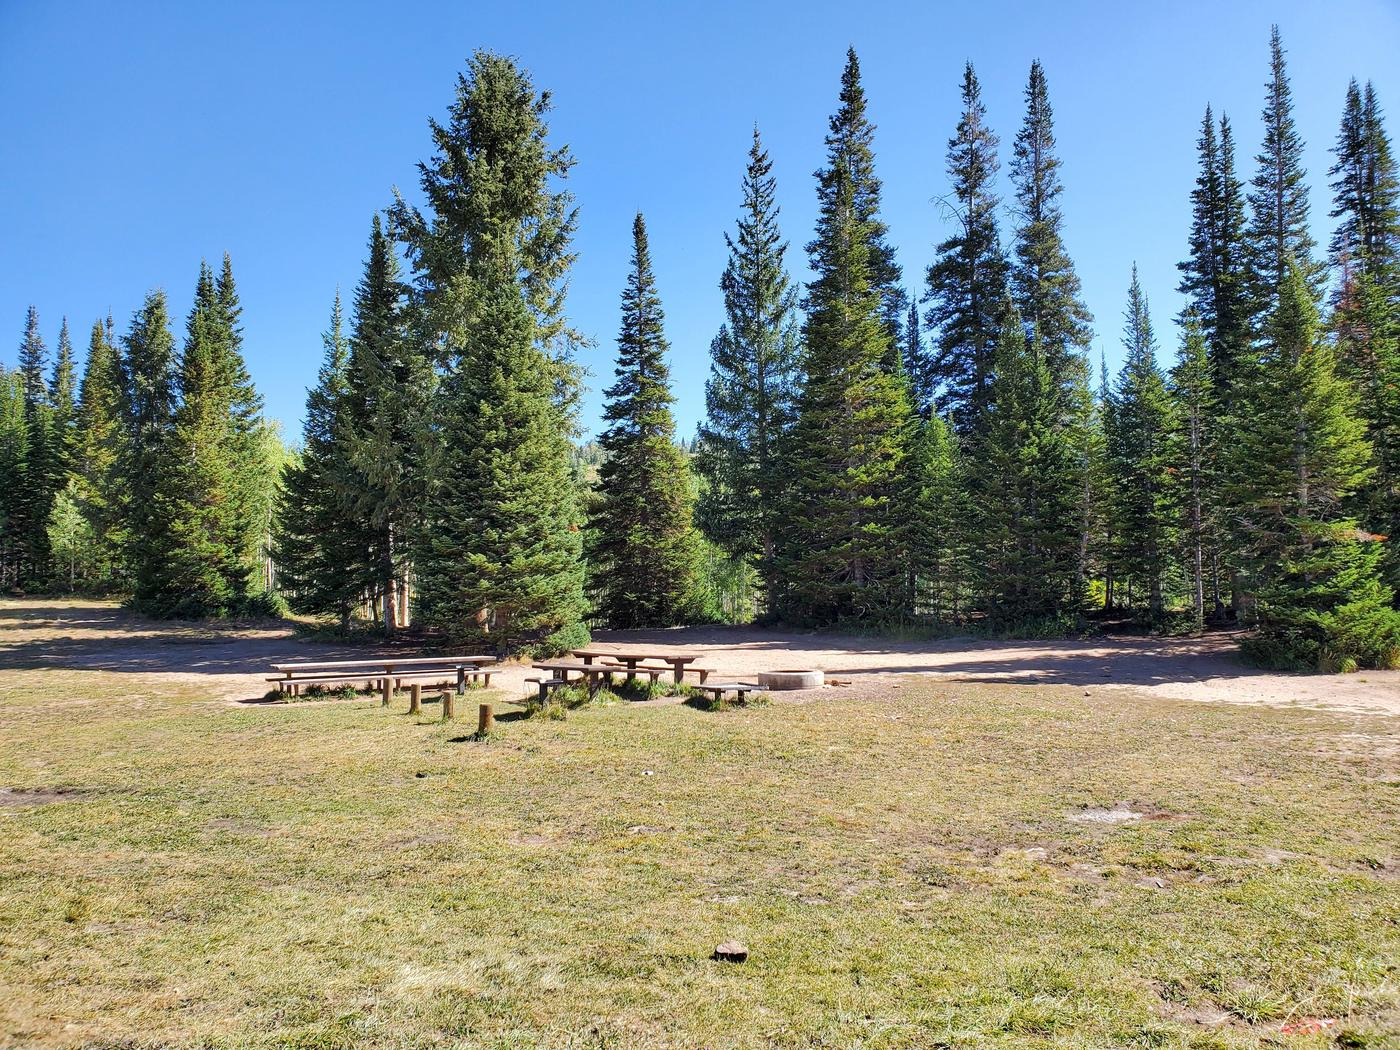 Lake Canyon Campground -  Rolfson Group Site BLake Canyon Campground - Rolfson Group Site B